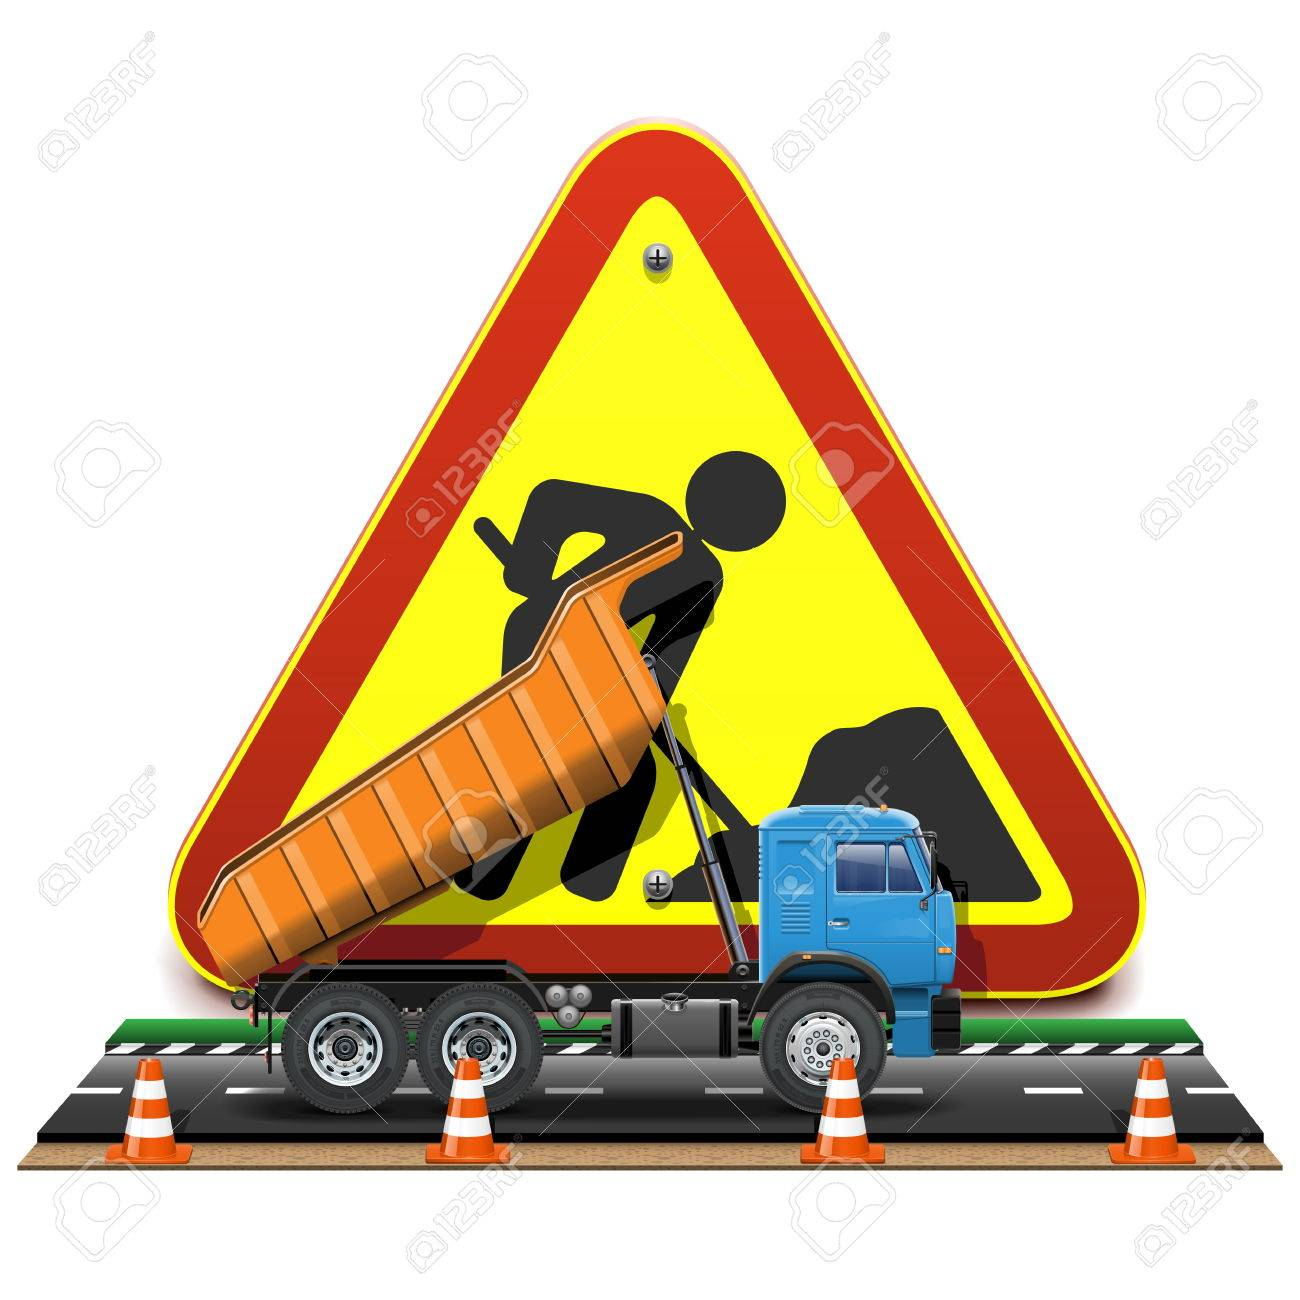 Vector Road Construction Concept with Truck Stock Vector - 27144659